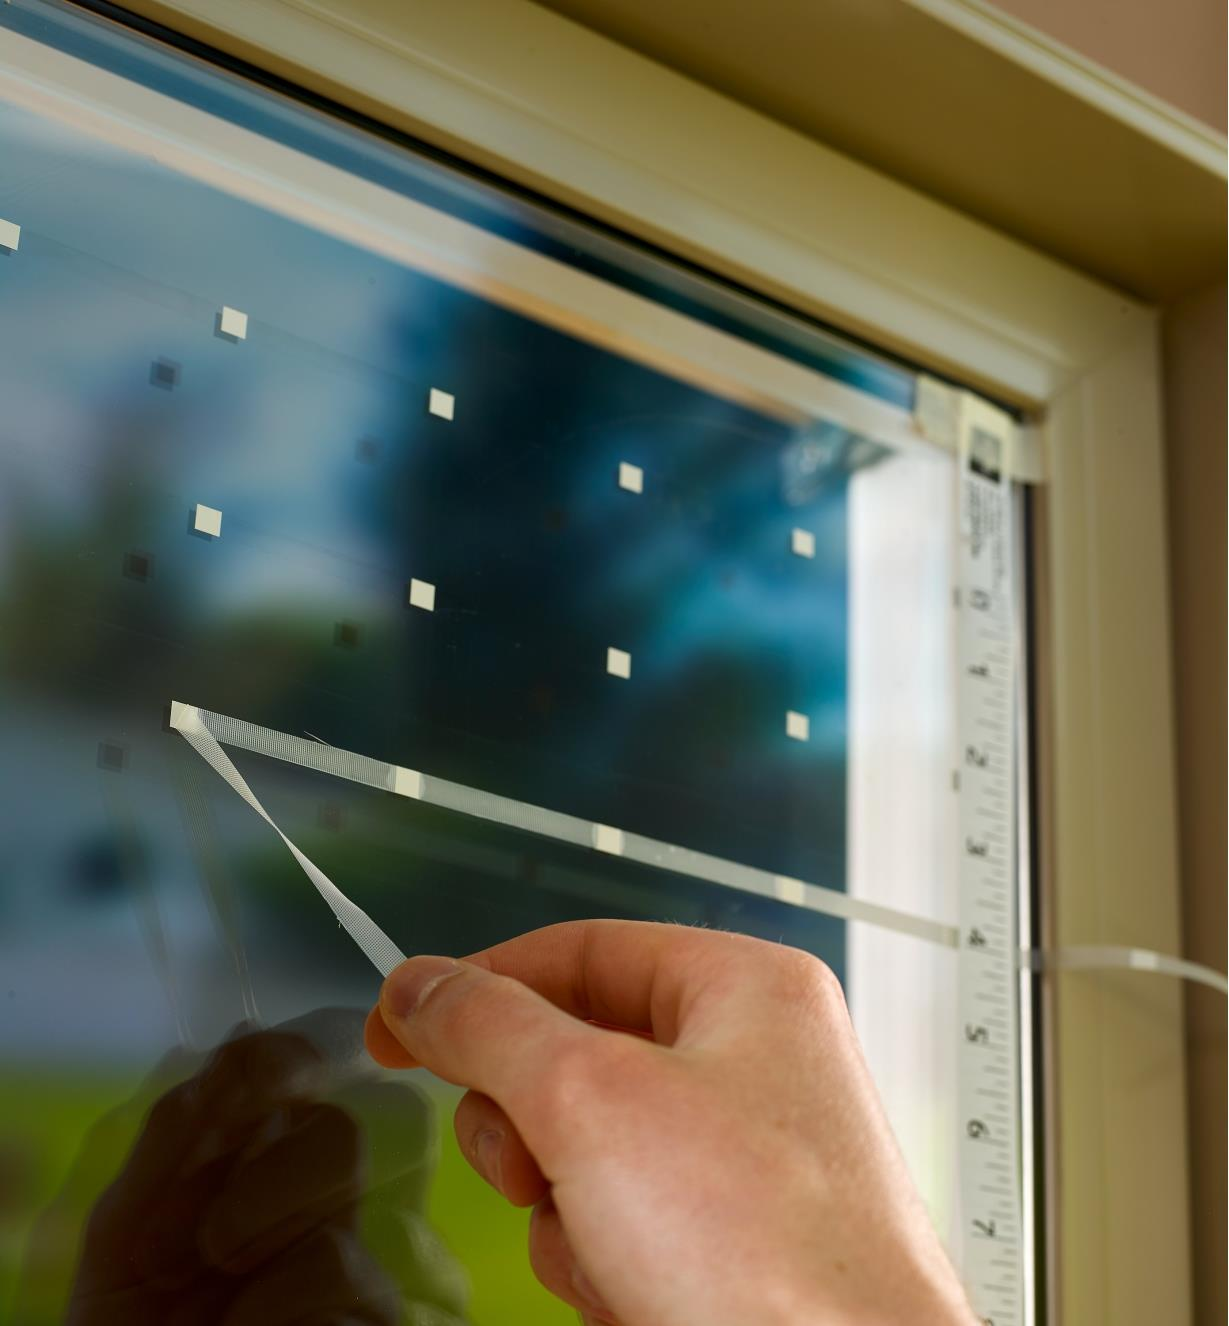 Pulling translucent tape away from a row of white squares on a window